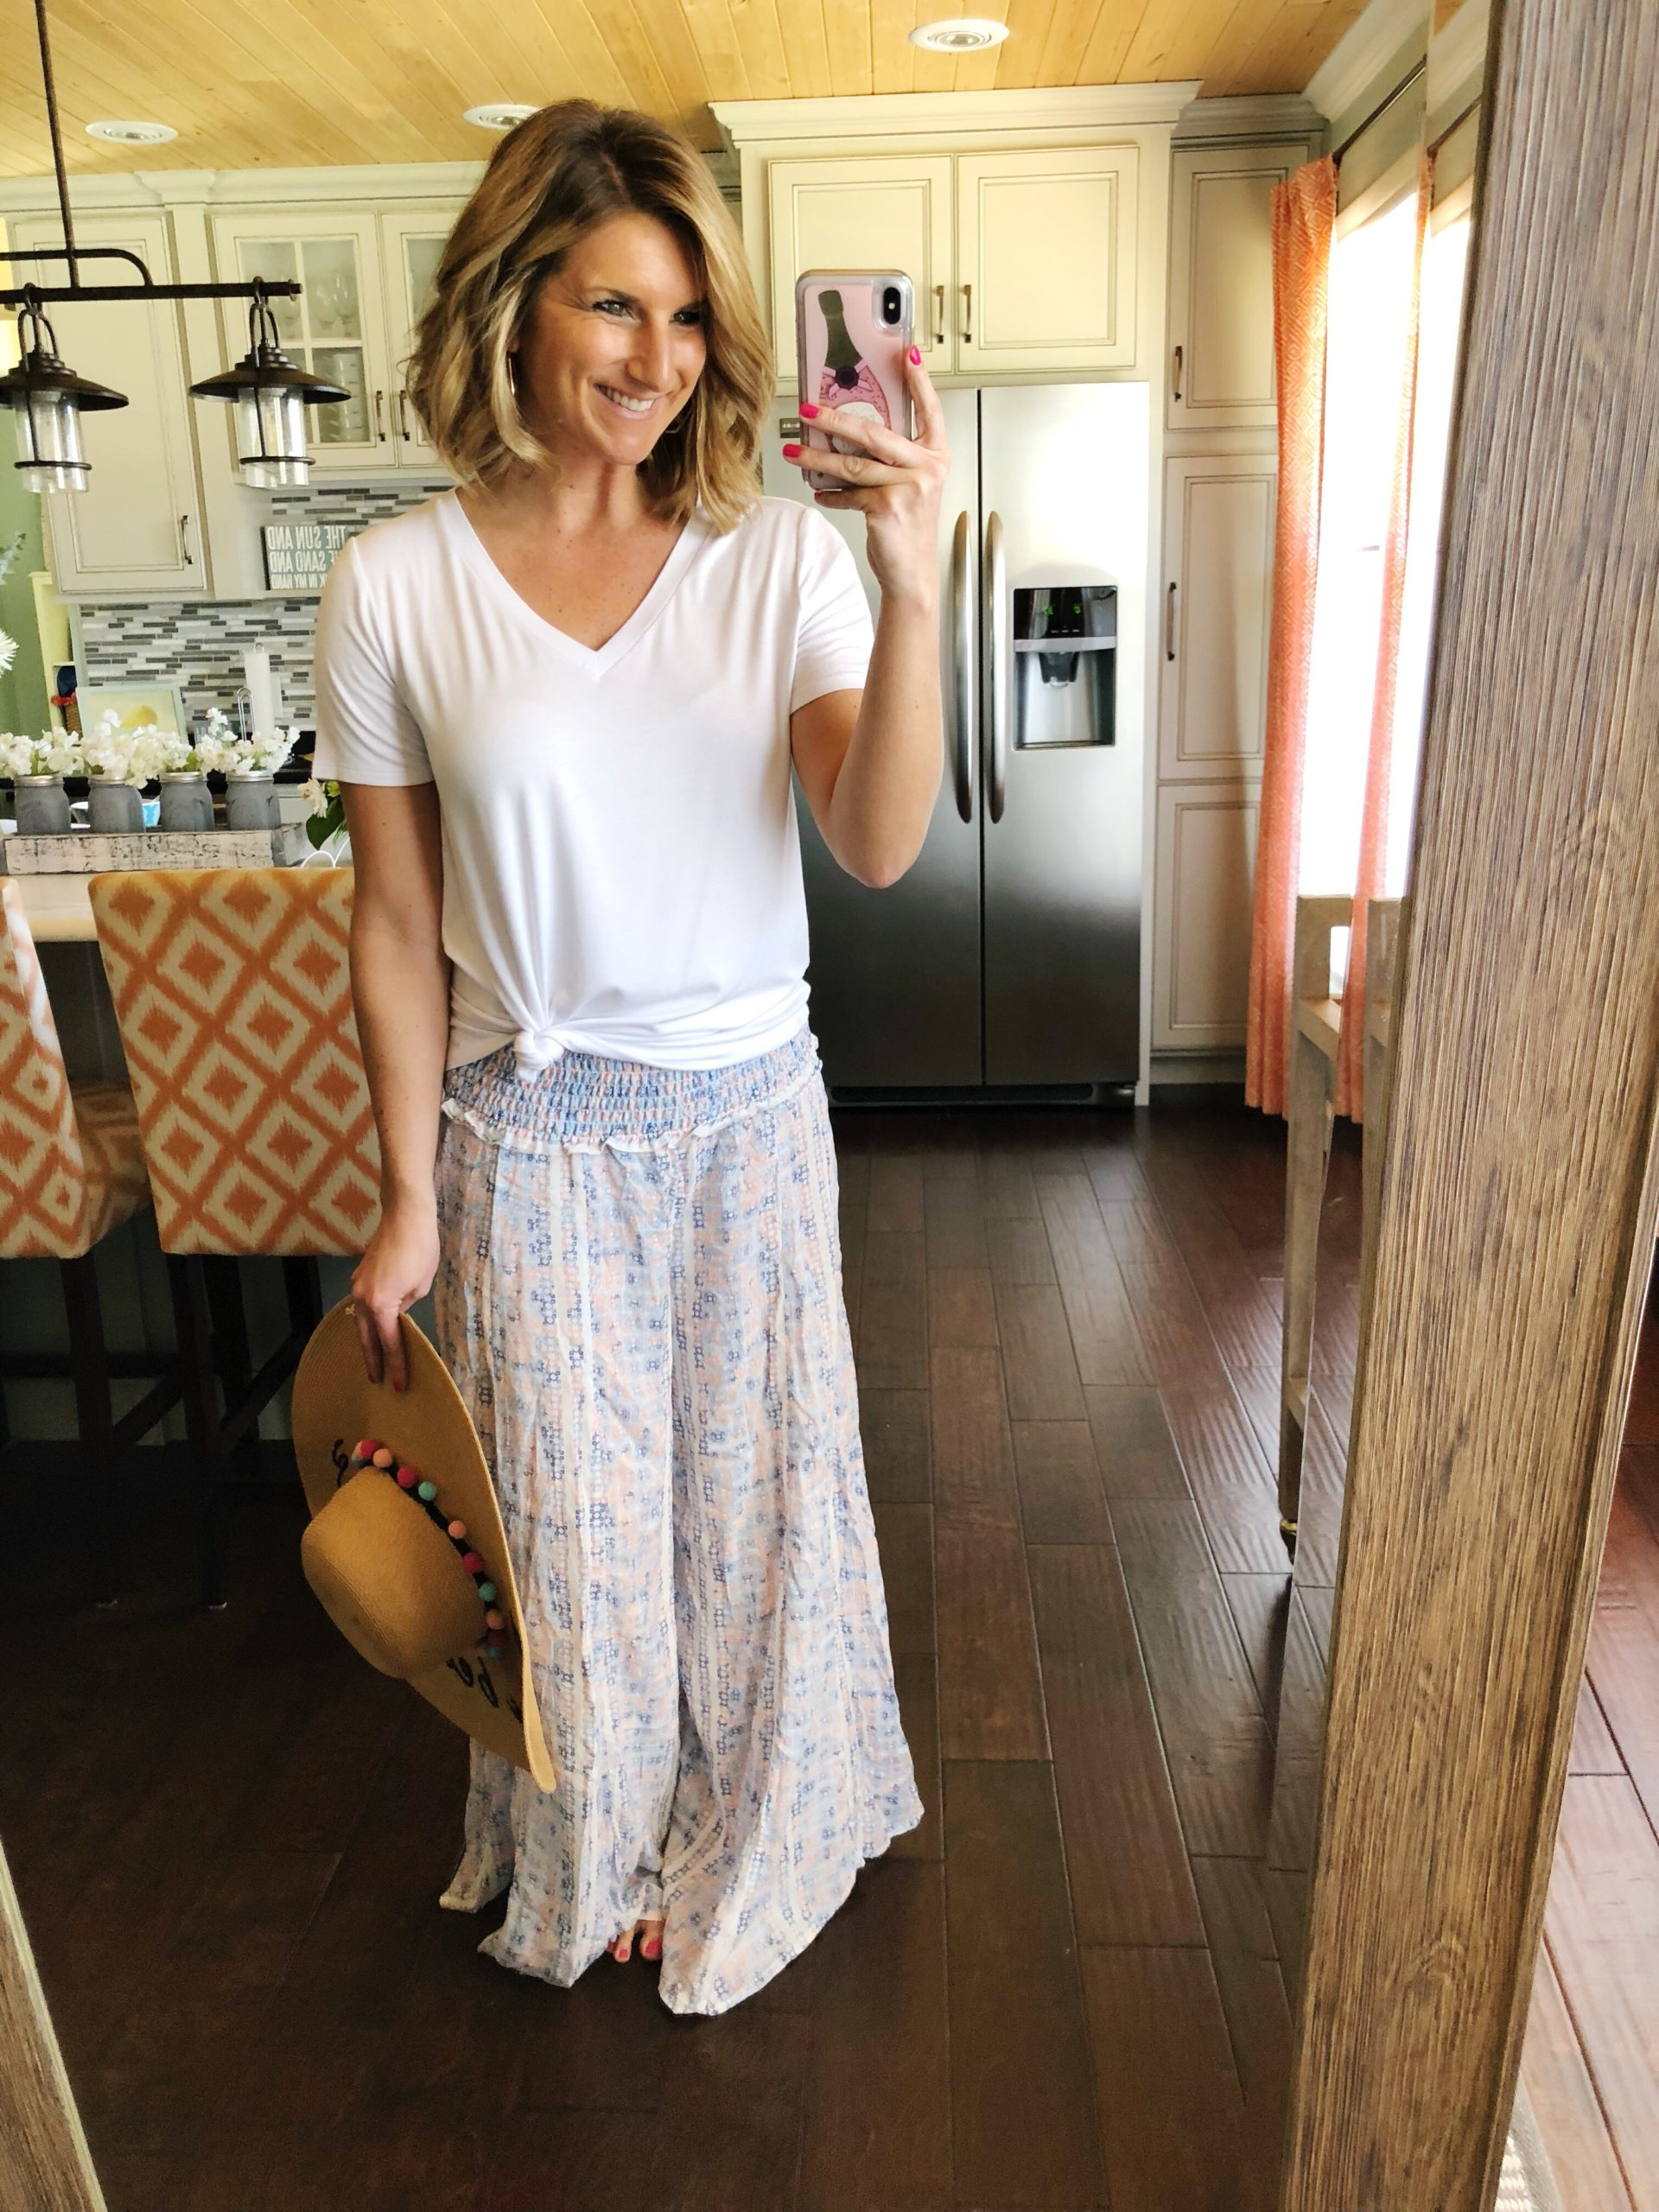 Vacation Wear // Casual Vacation Outfit // Beach Wear // Perfect V Neck Tee + Beach Pants + Floppy Hat // Casual Summer Outfit